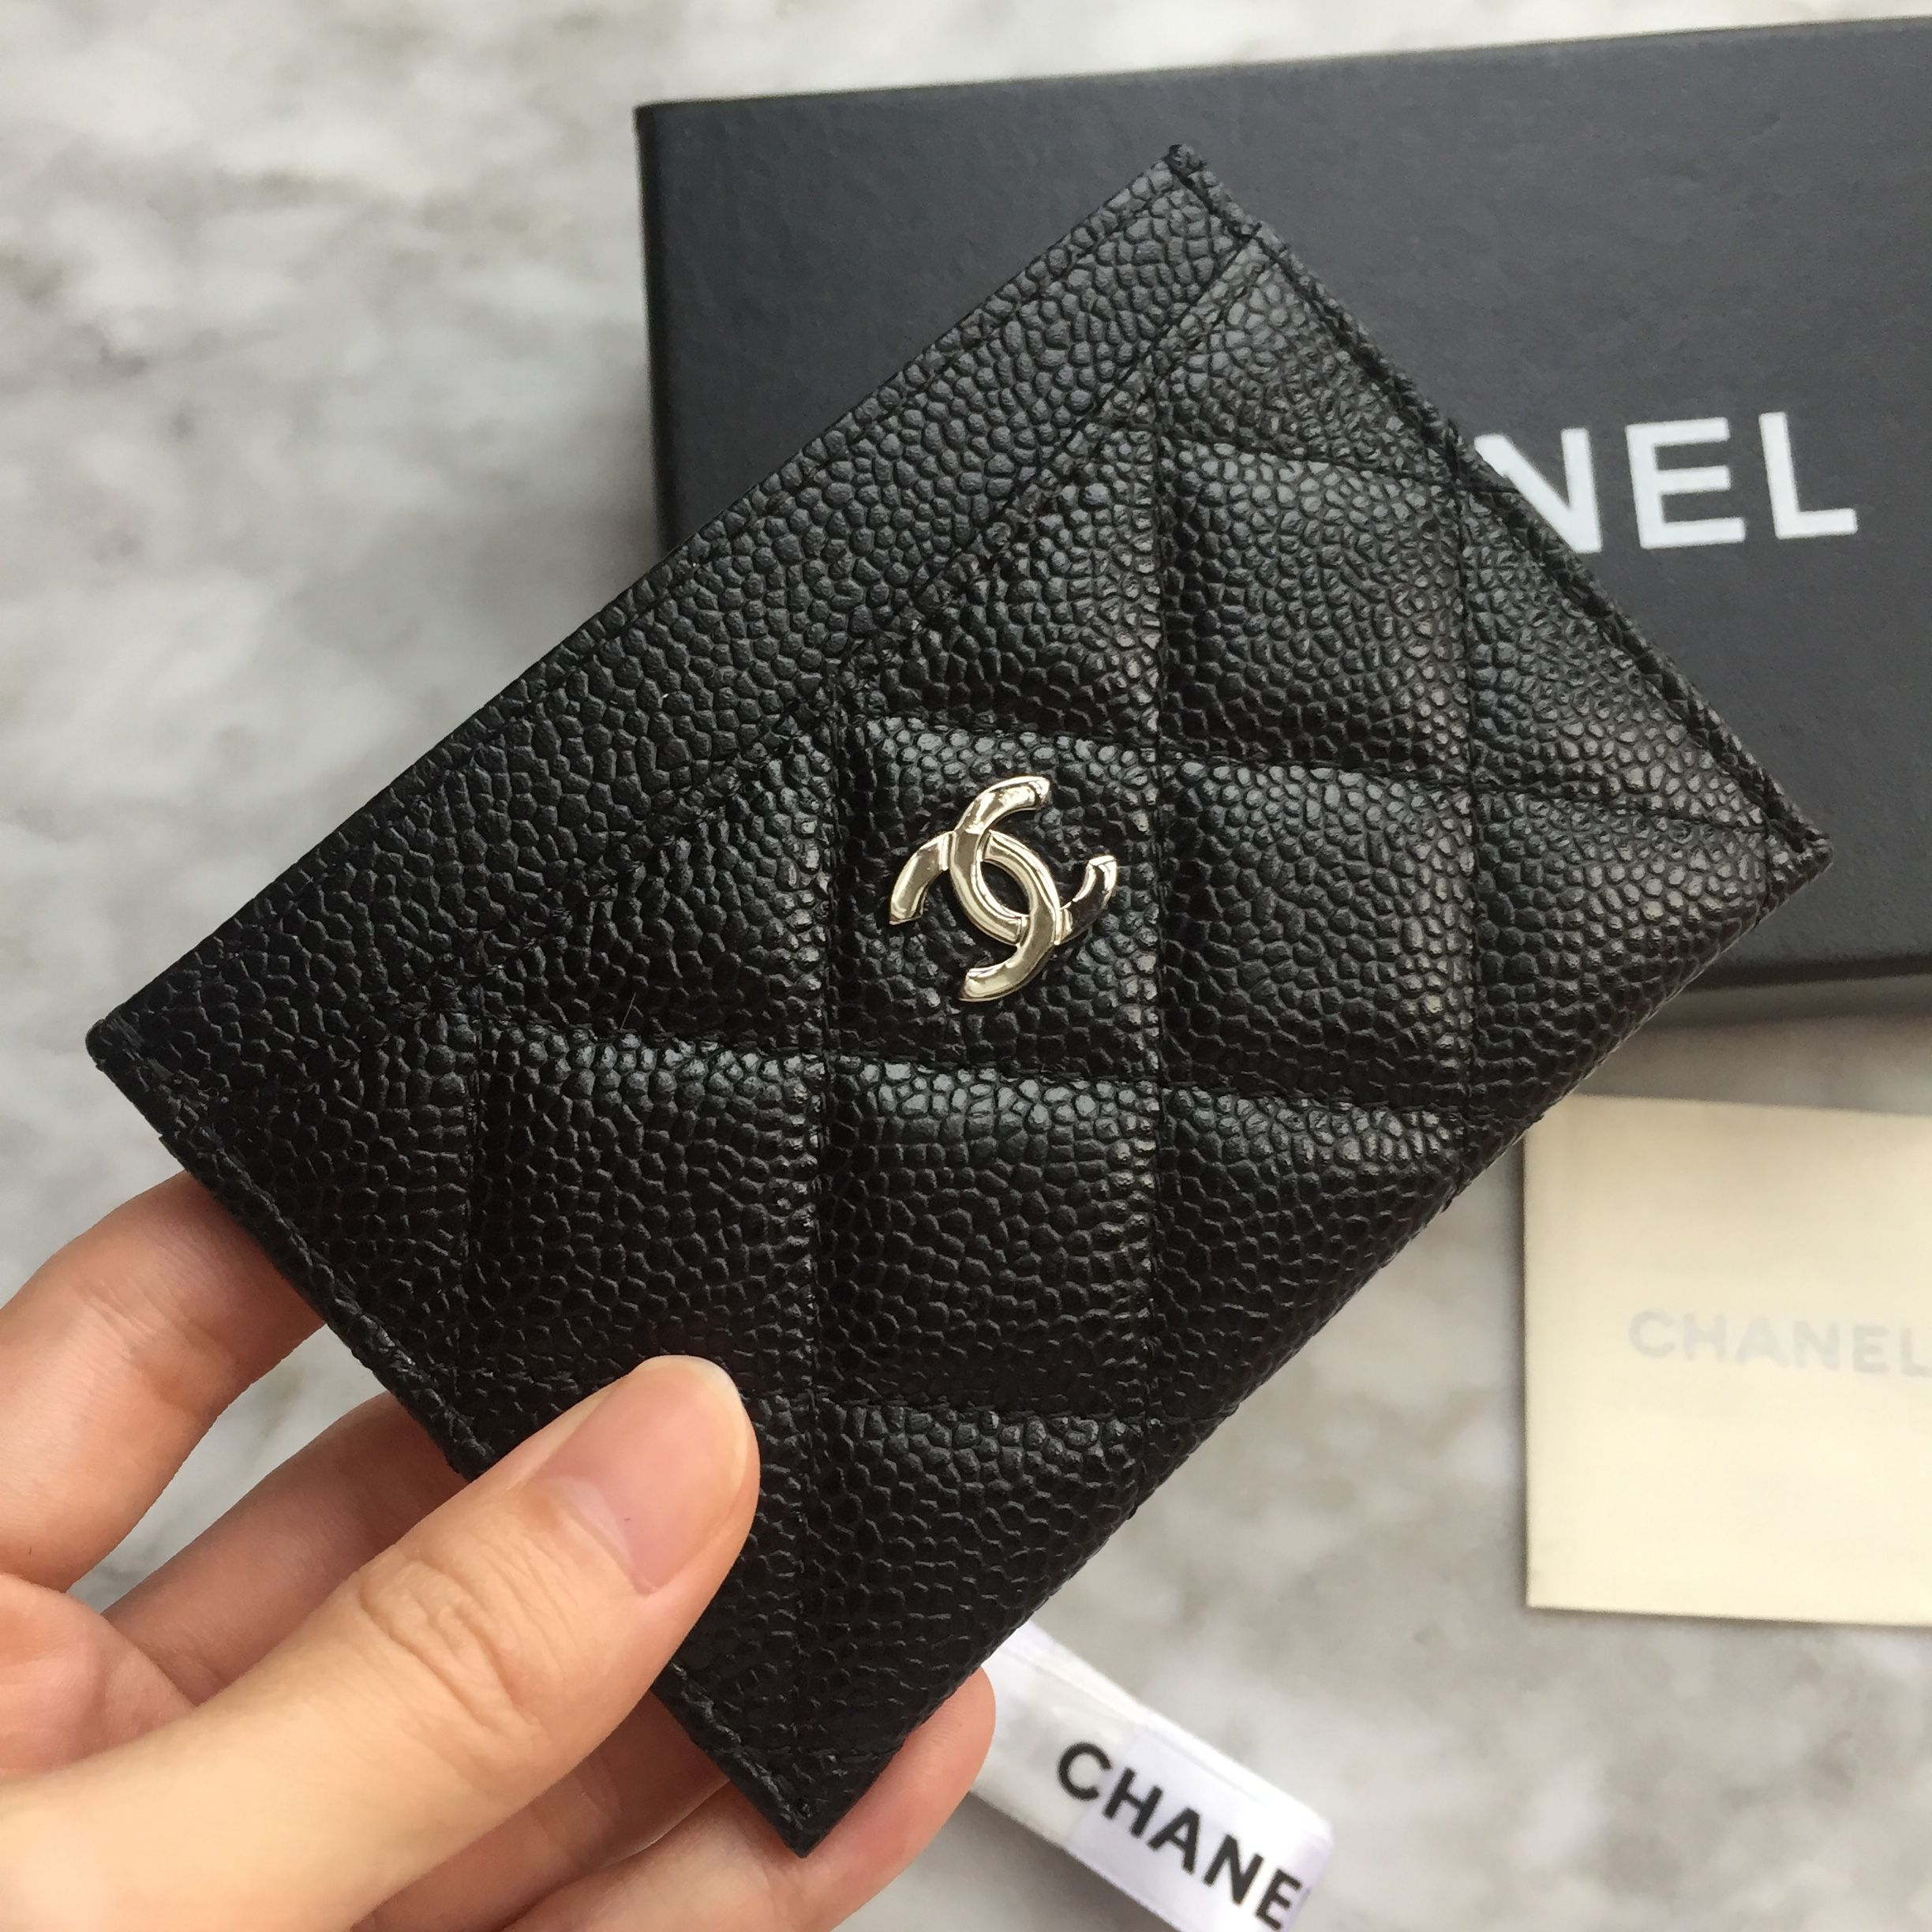 chanel card holder. chanel card holder black caviar leather